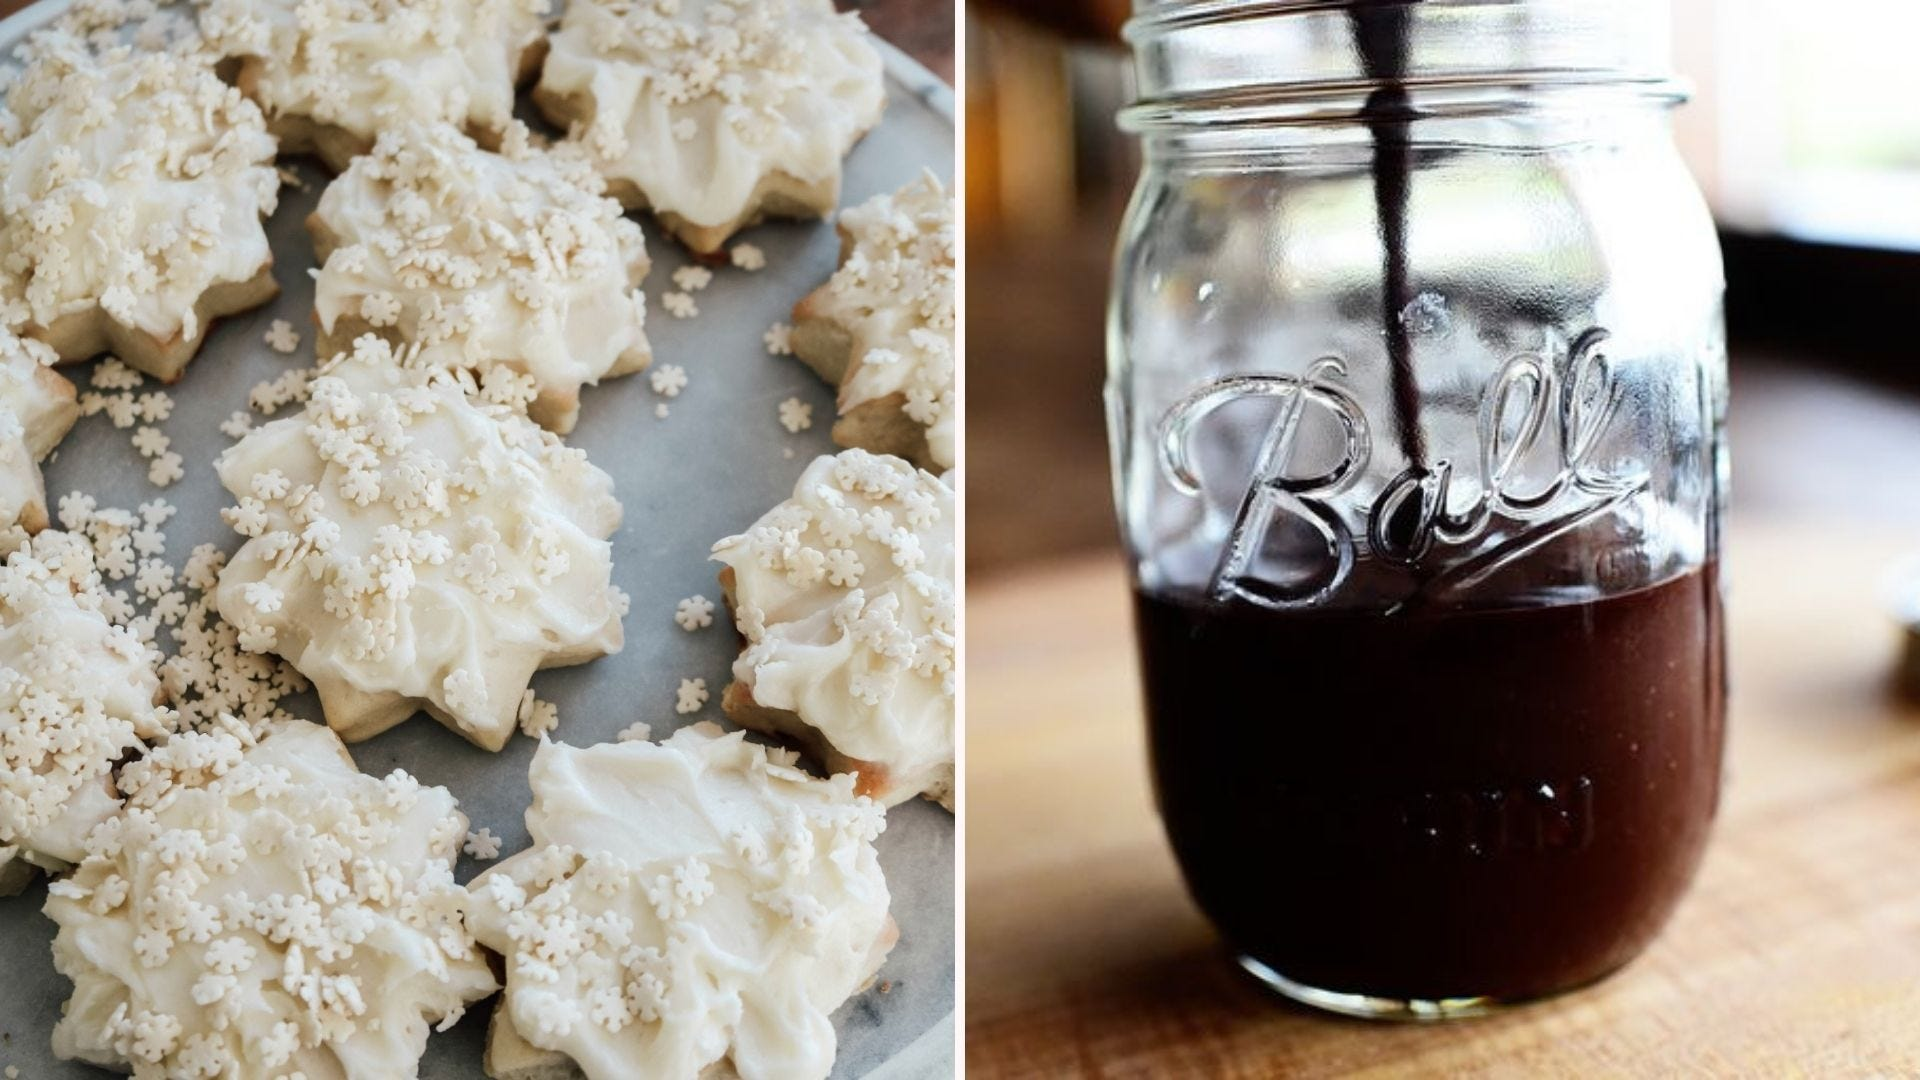 A tray of snowflake-shaped sugar cookies; a half-filled glass jar of fudge sauce